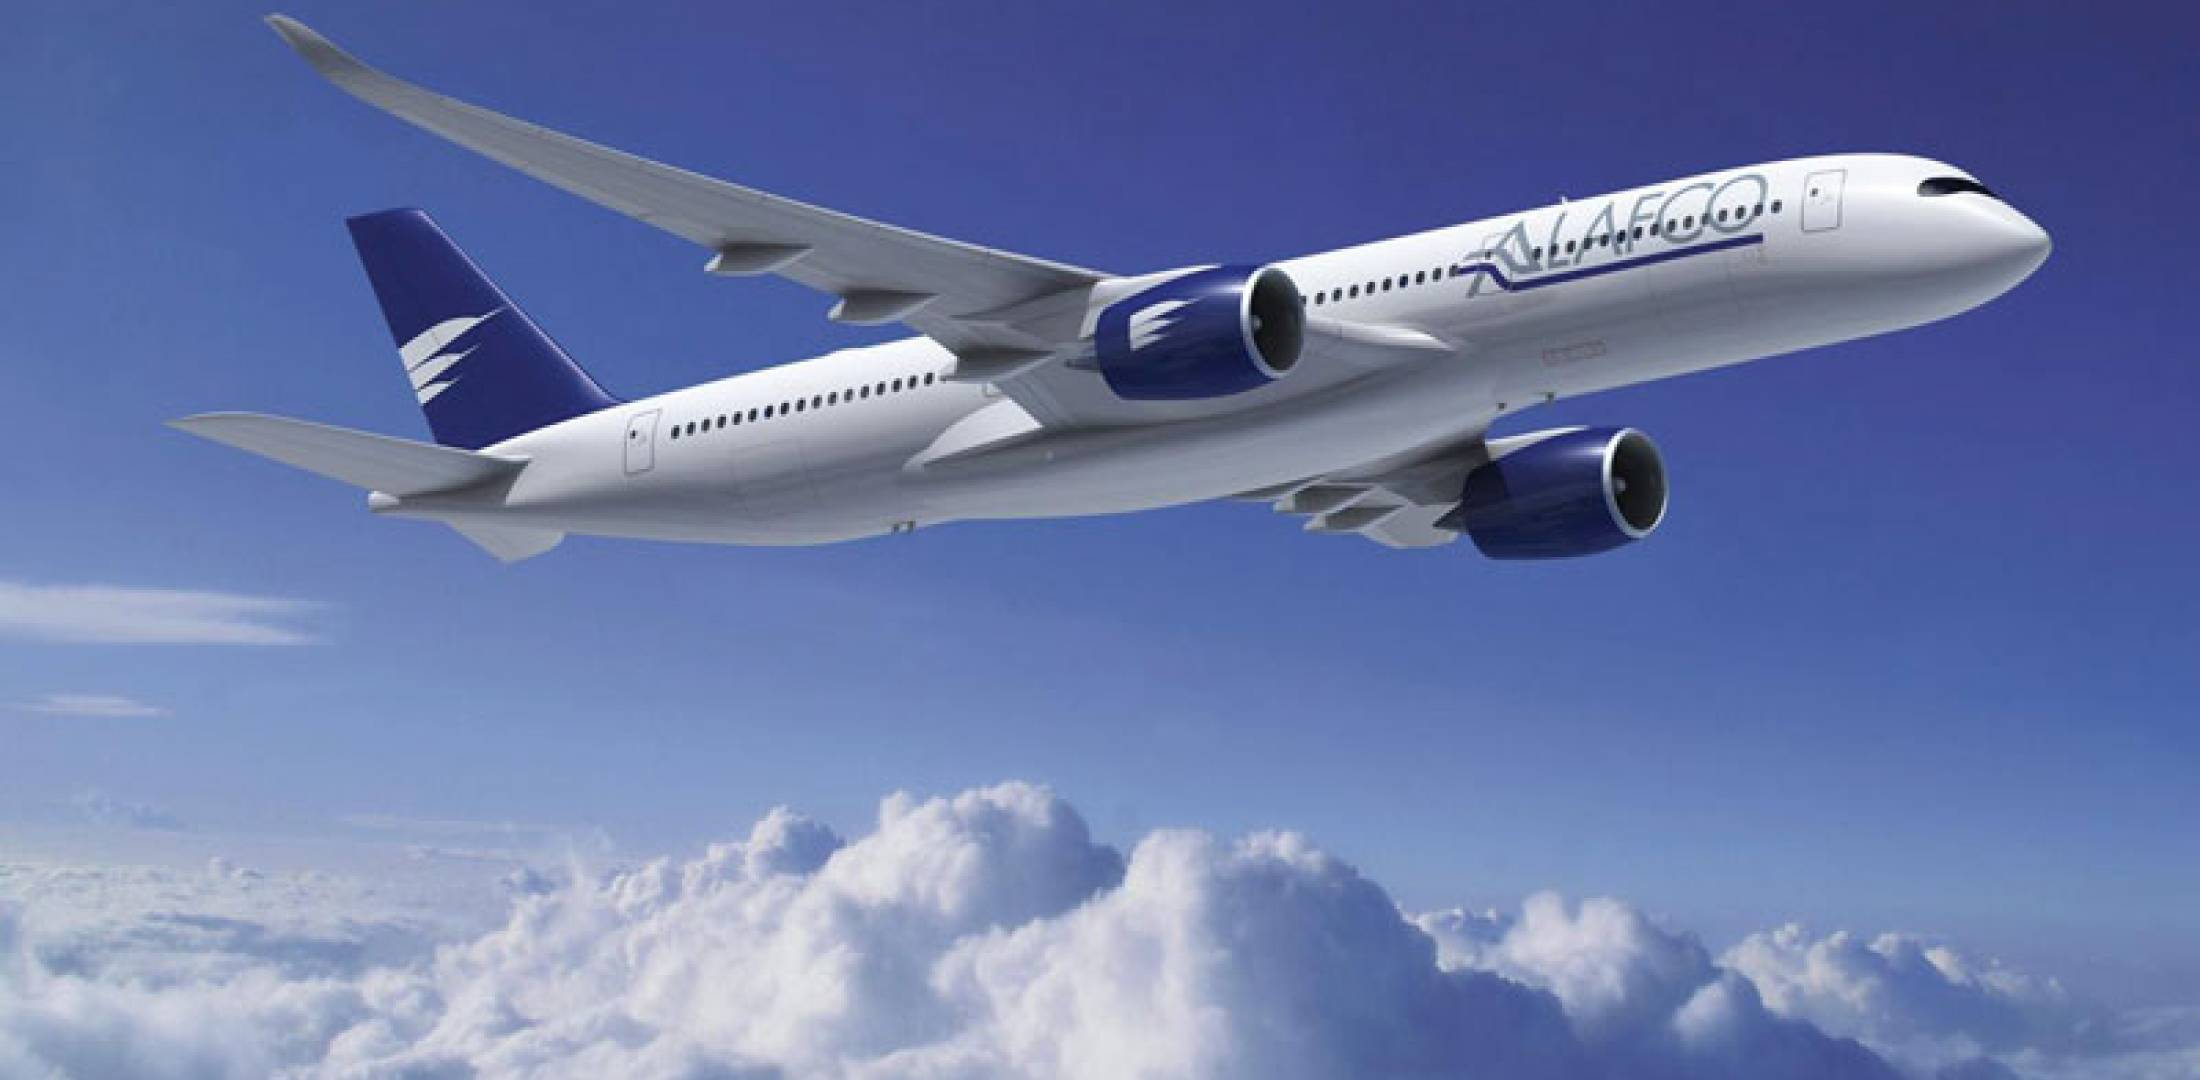 Airbus A350XWB has been ordered by Kuwait's Alafco leasing group